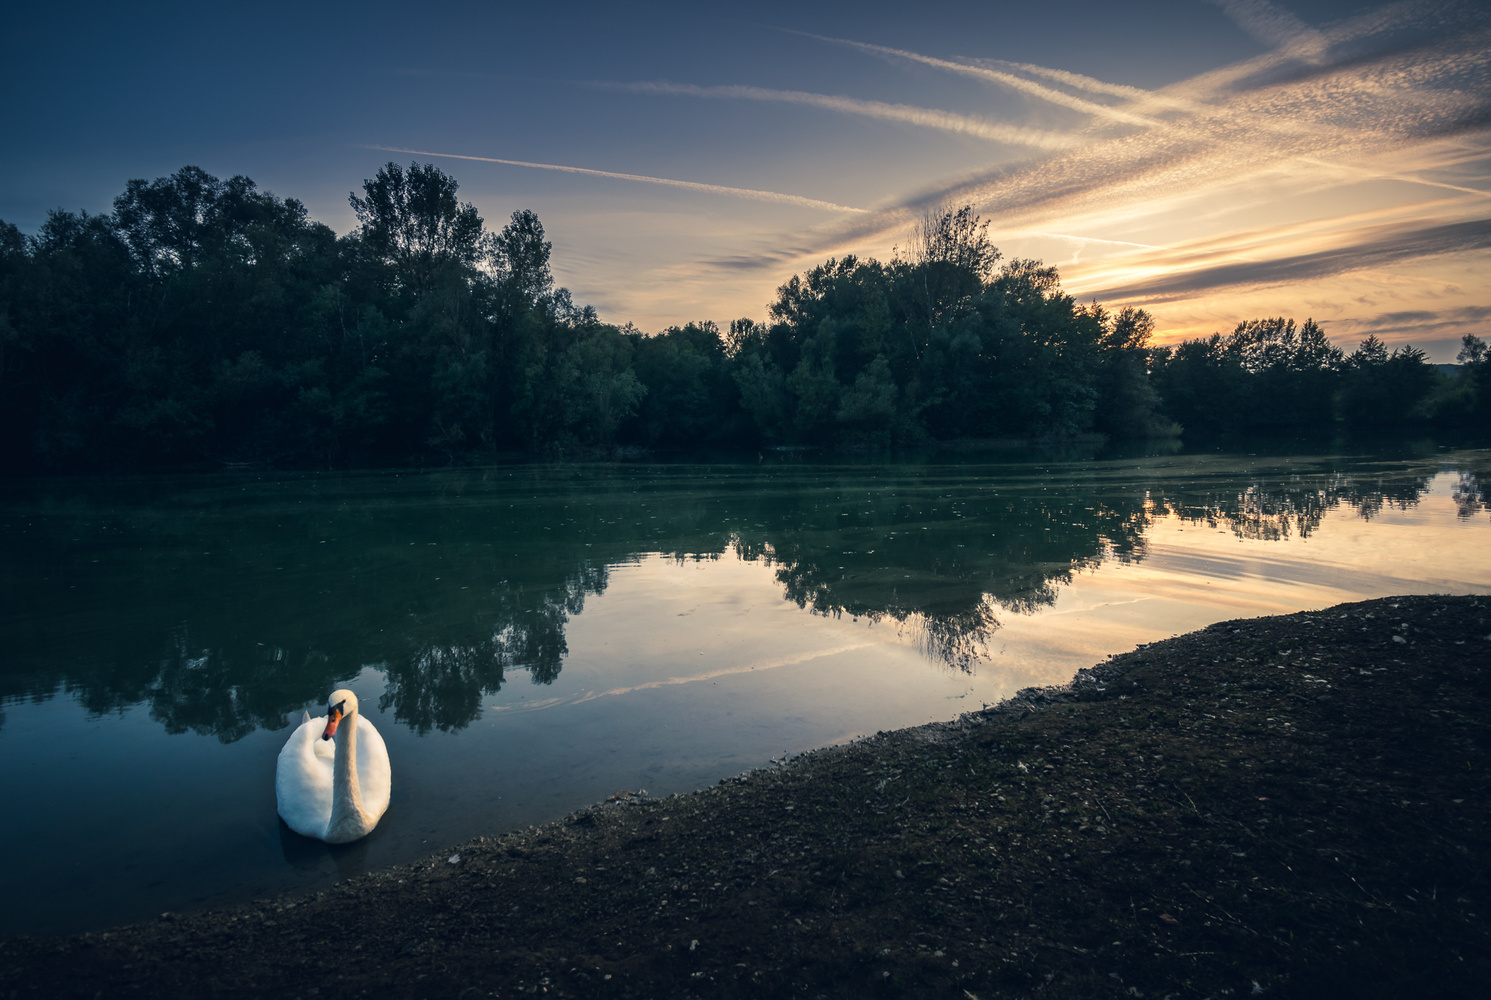 Swan and sunset by Tihomir Dubic